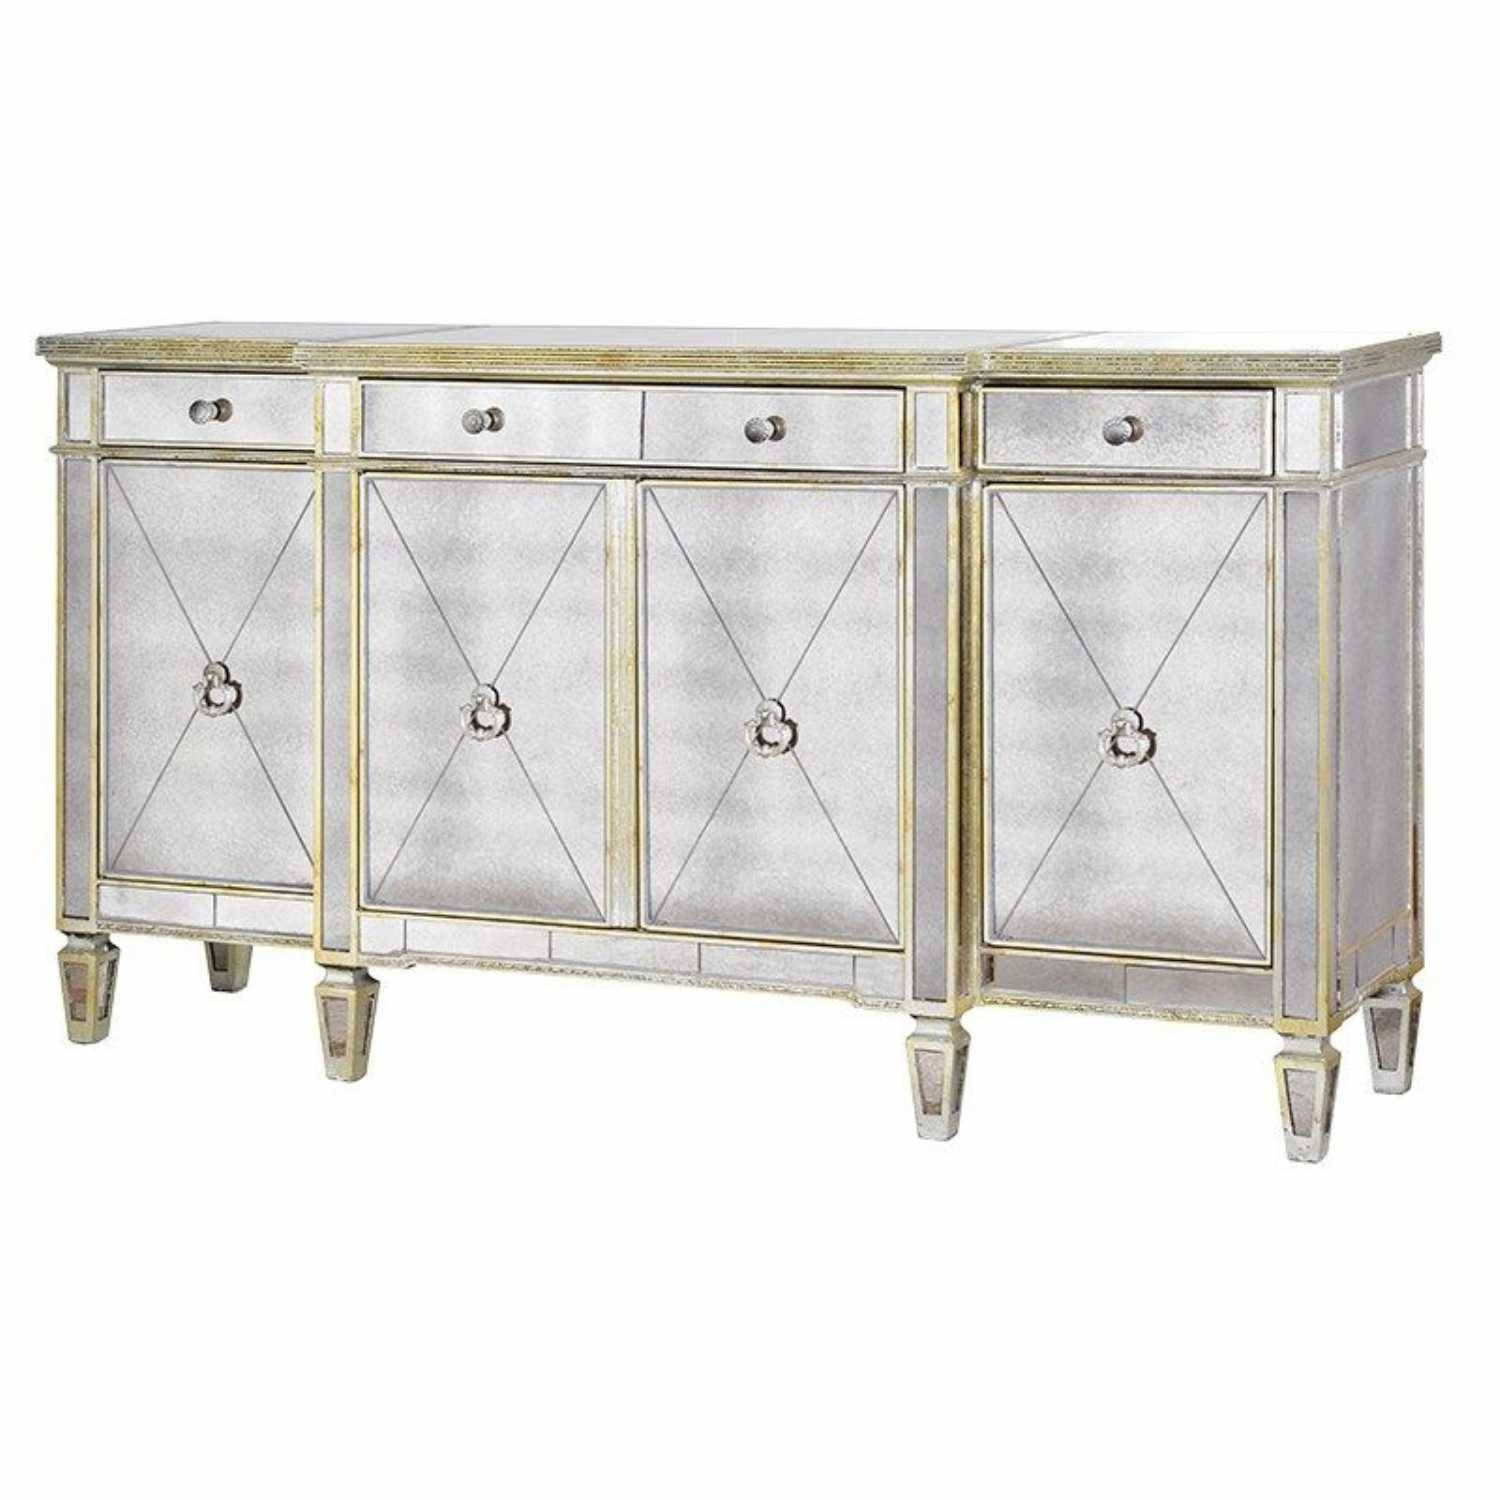 Large Antique Seville Venetian Mirrored Glass Sideboard 4 Door throughout Venetian Mirrored Sideboards (Image 6 of 30)